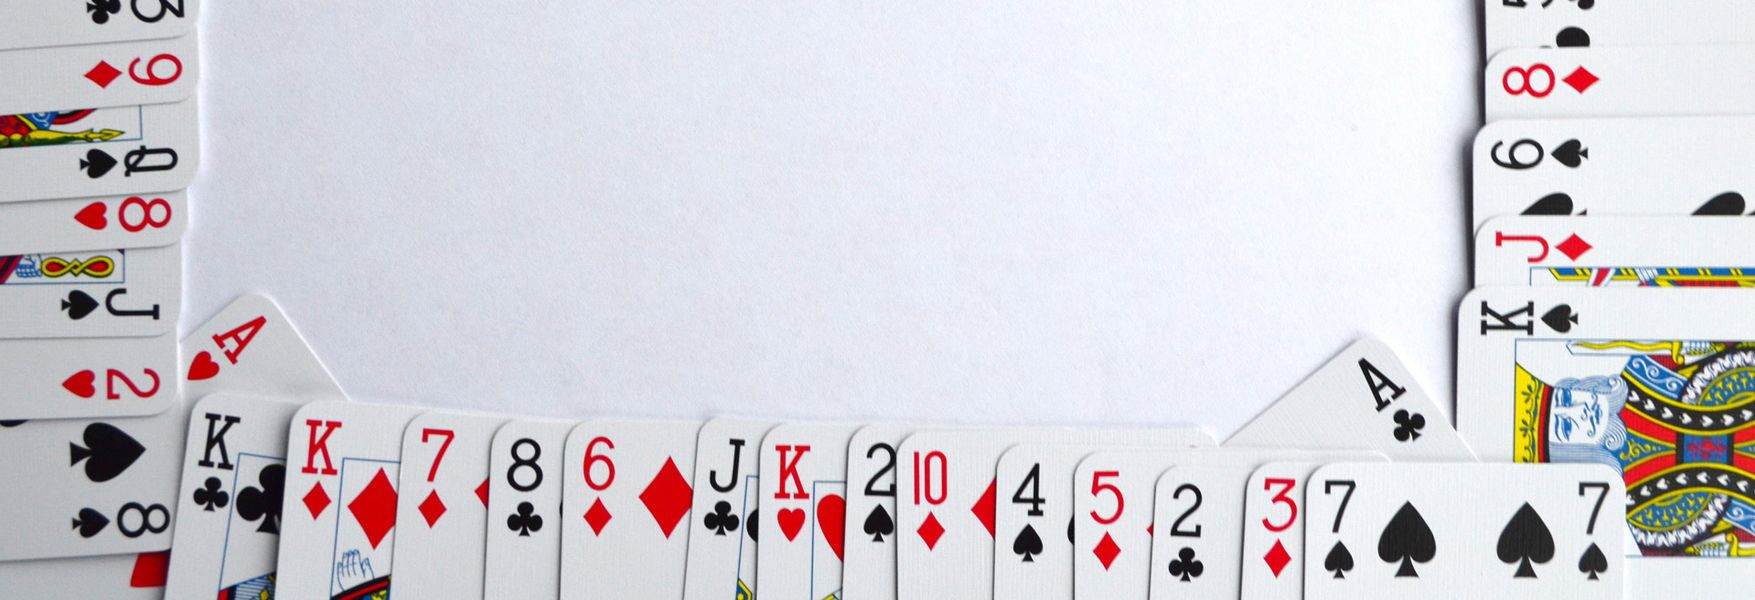 Friends', Trick Card Games and Probability Theory   OpenMind